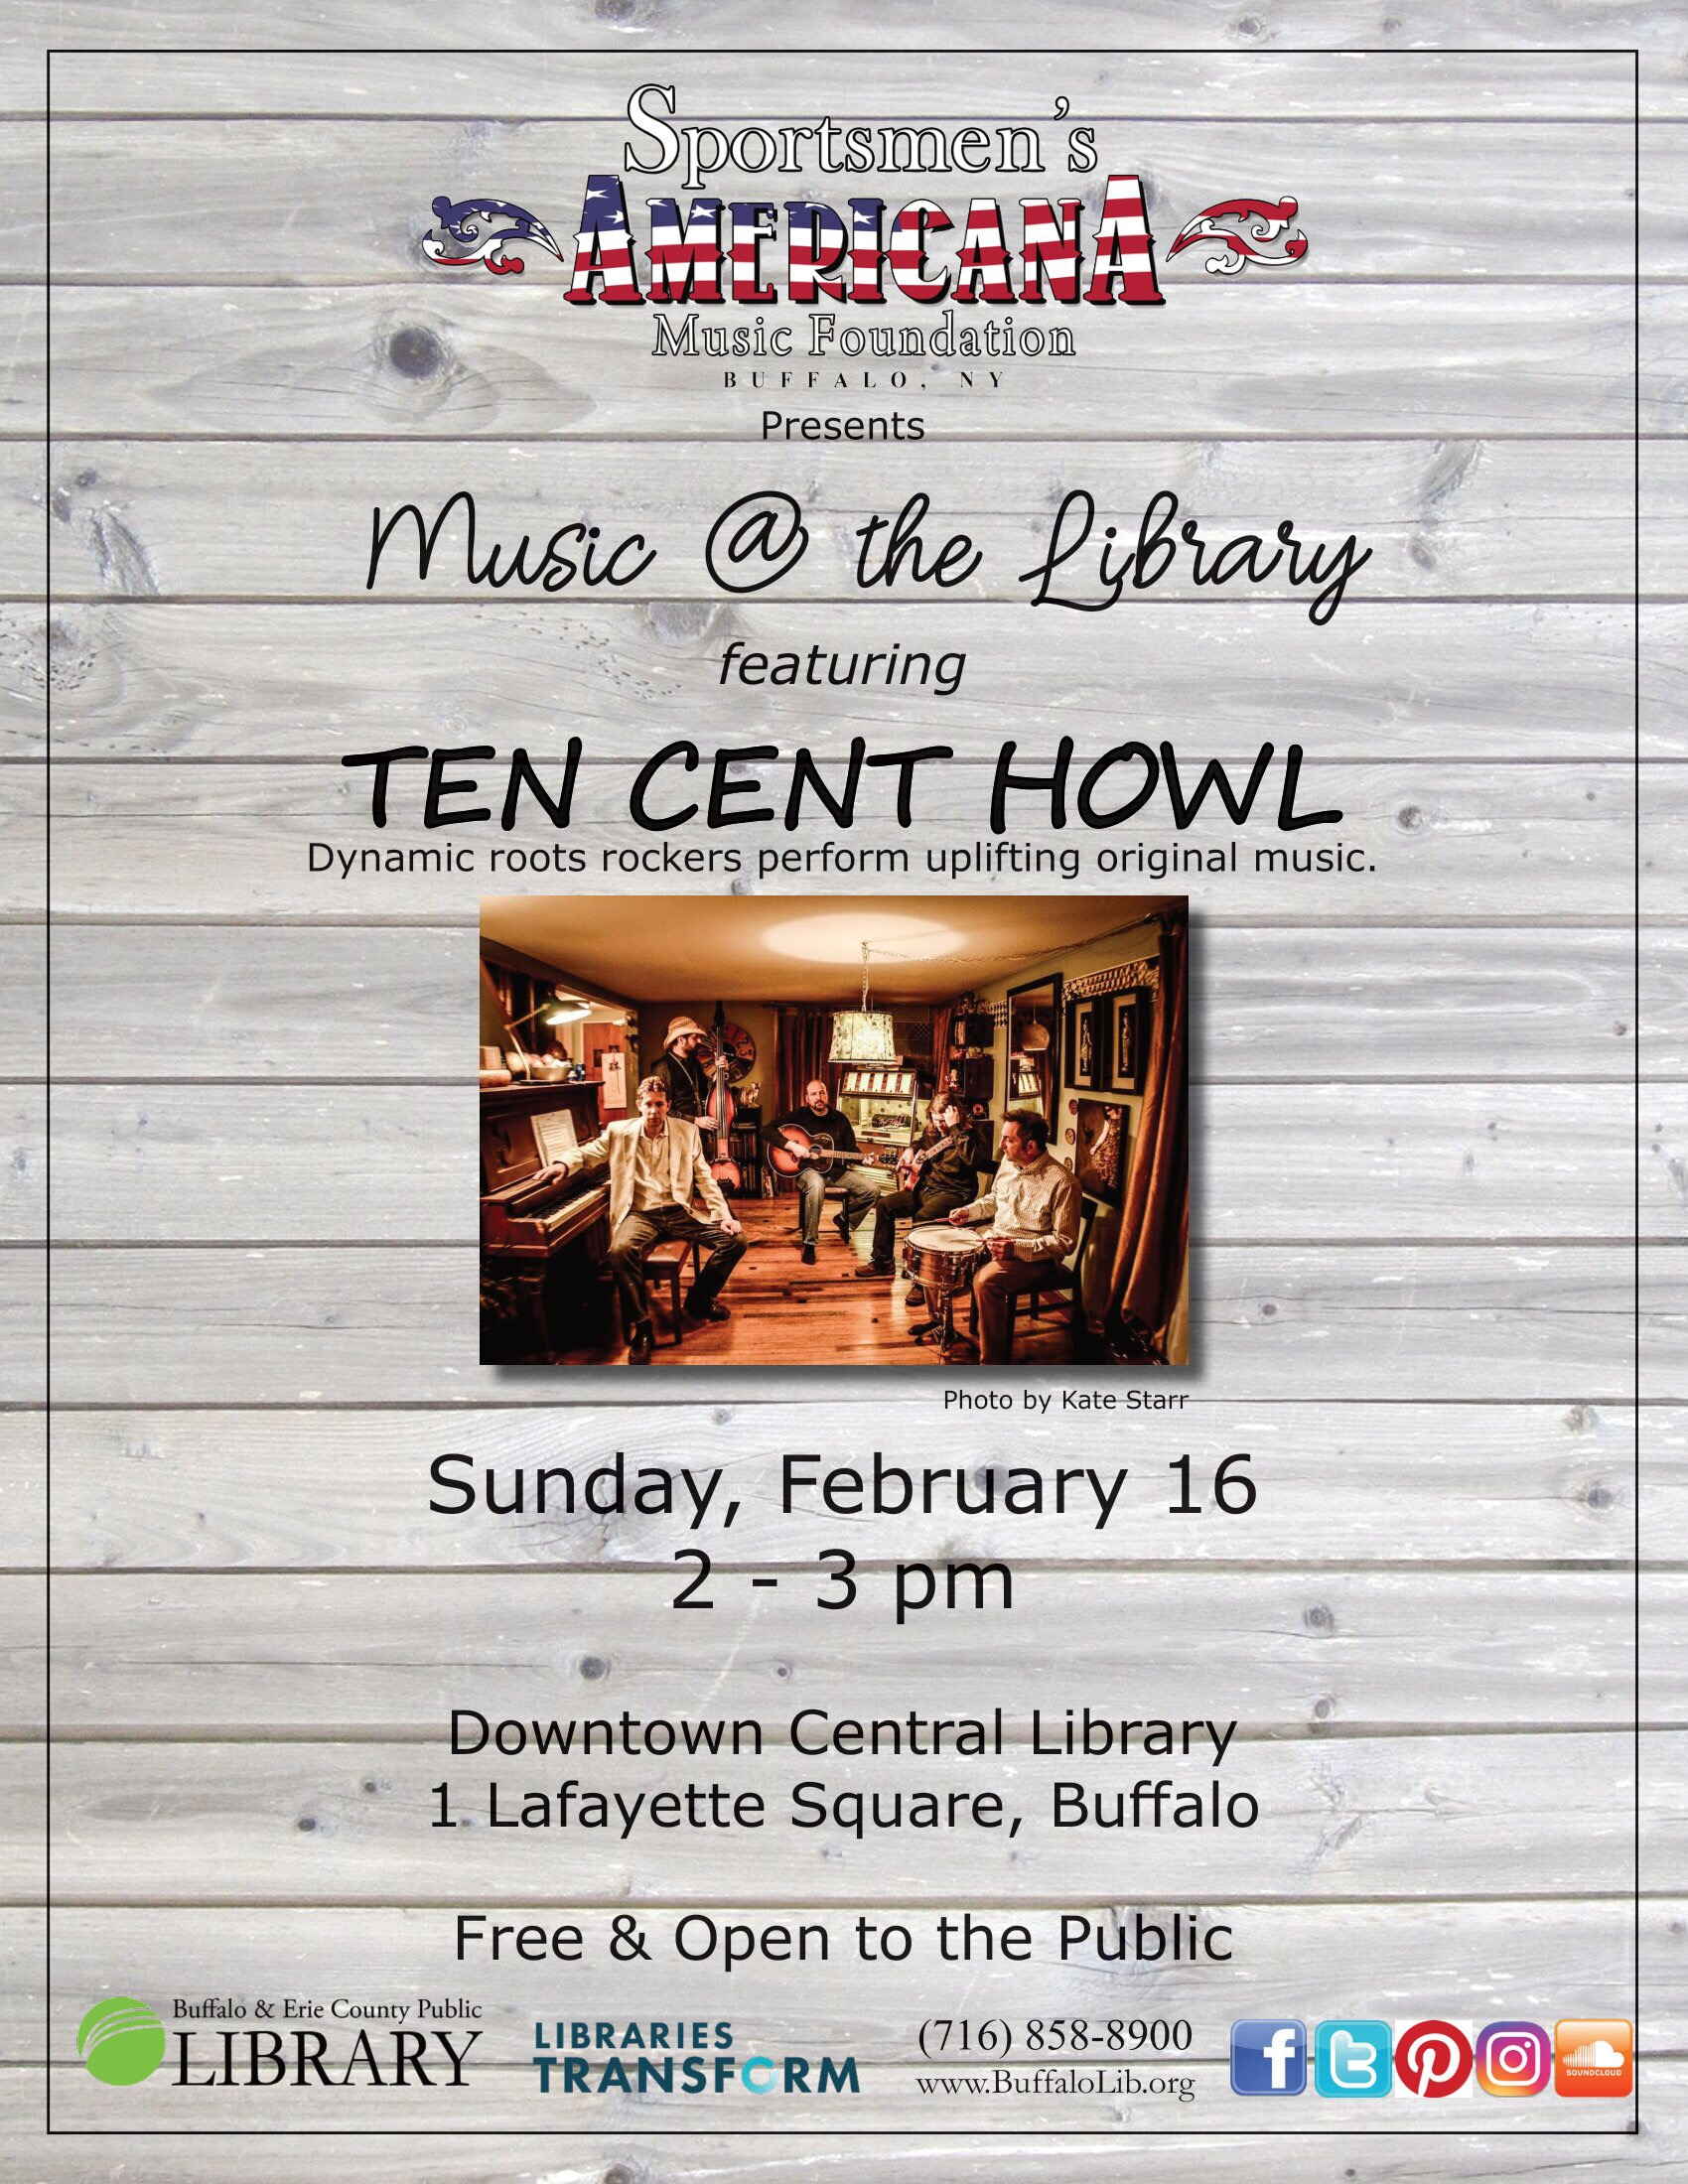 Music @ the Library to debut Feb. 16